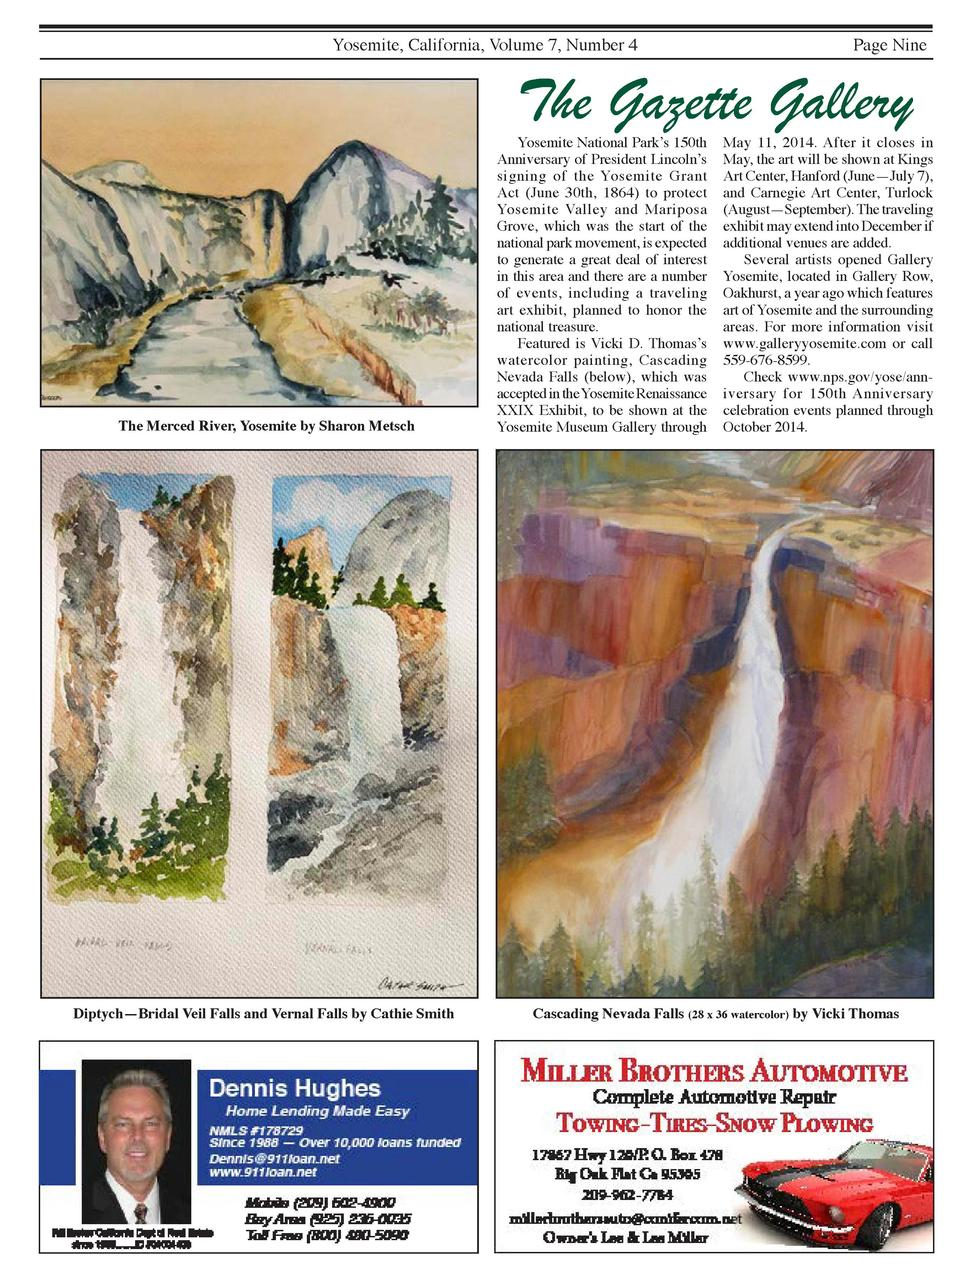 Yosemite, California, Volume 7, Number 4  Page Nine  The Gazette Gallery  The Merced River, Yosemite by Sharon Metsch  Dip...